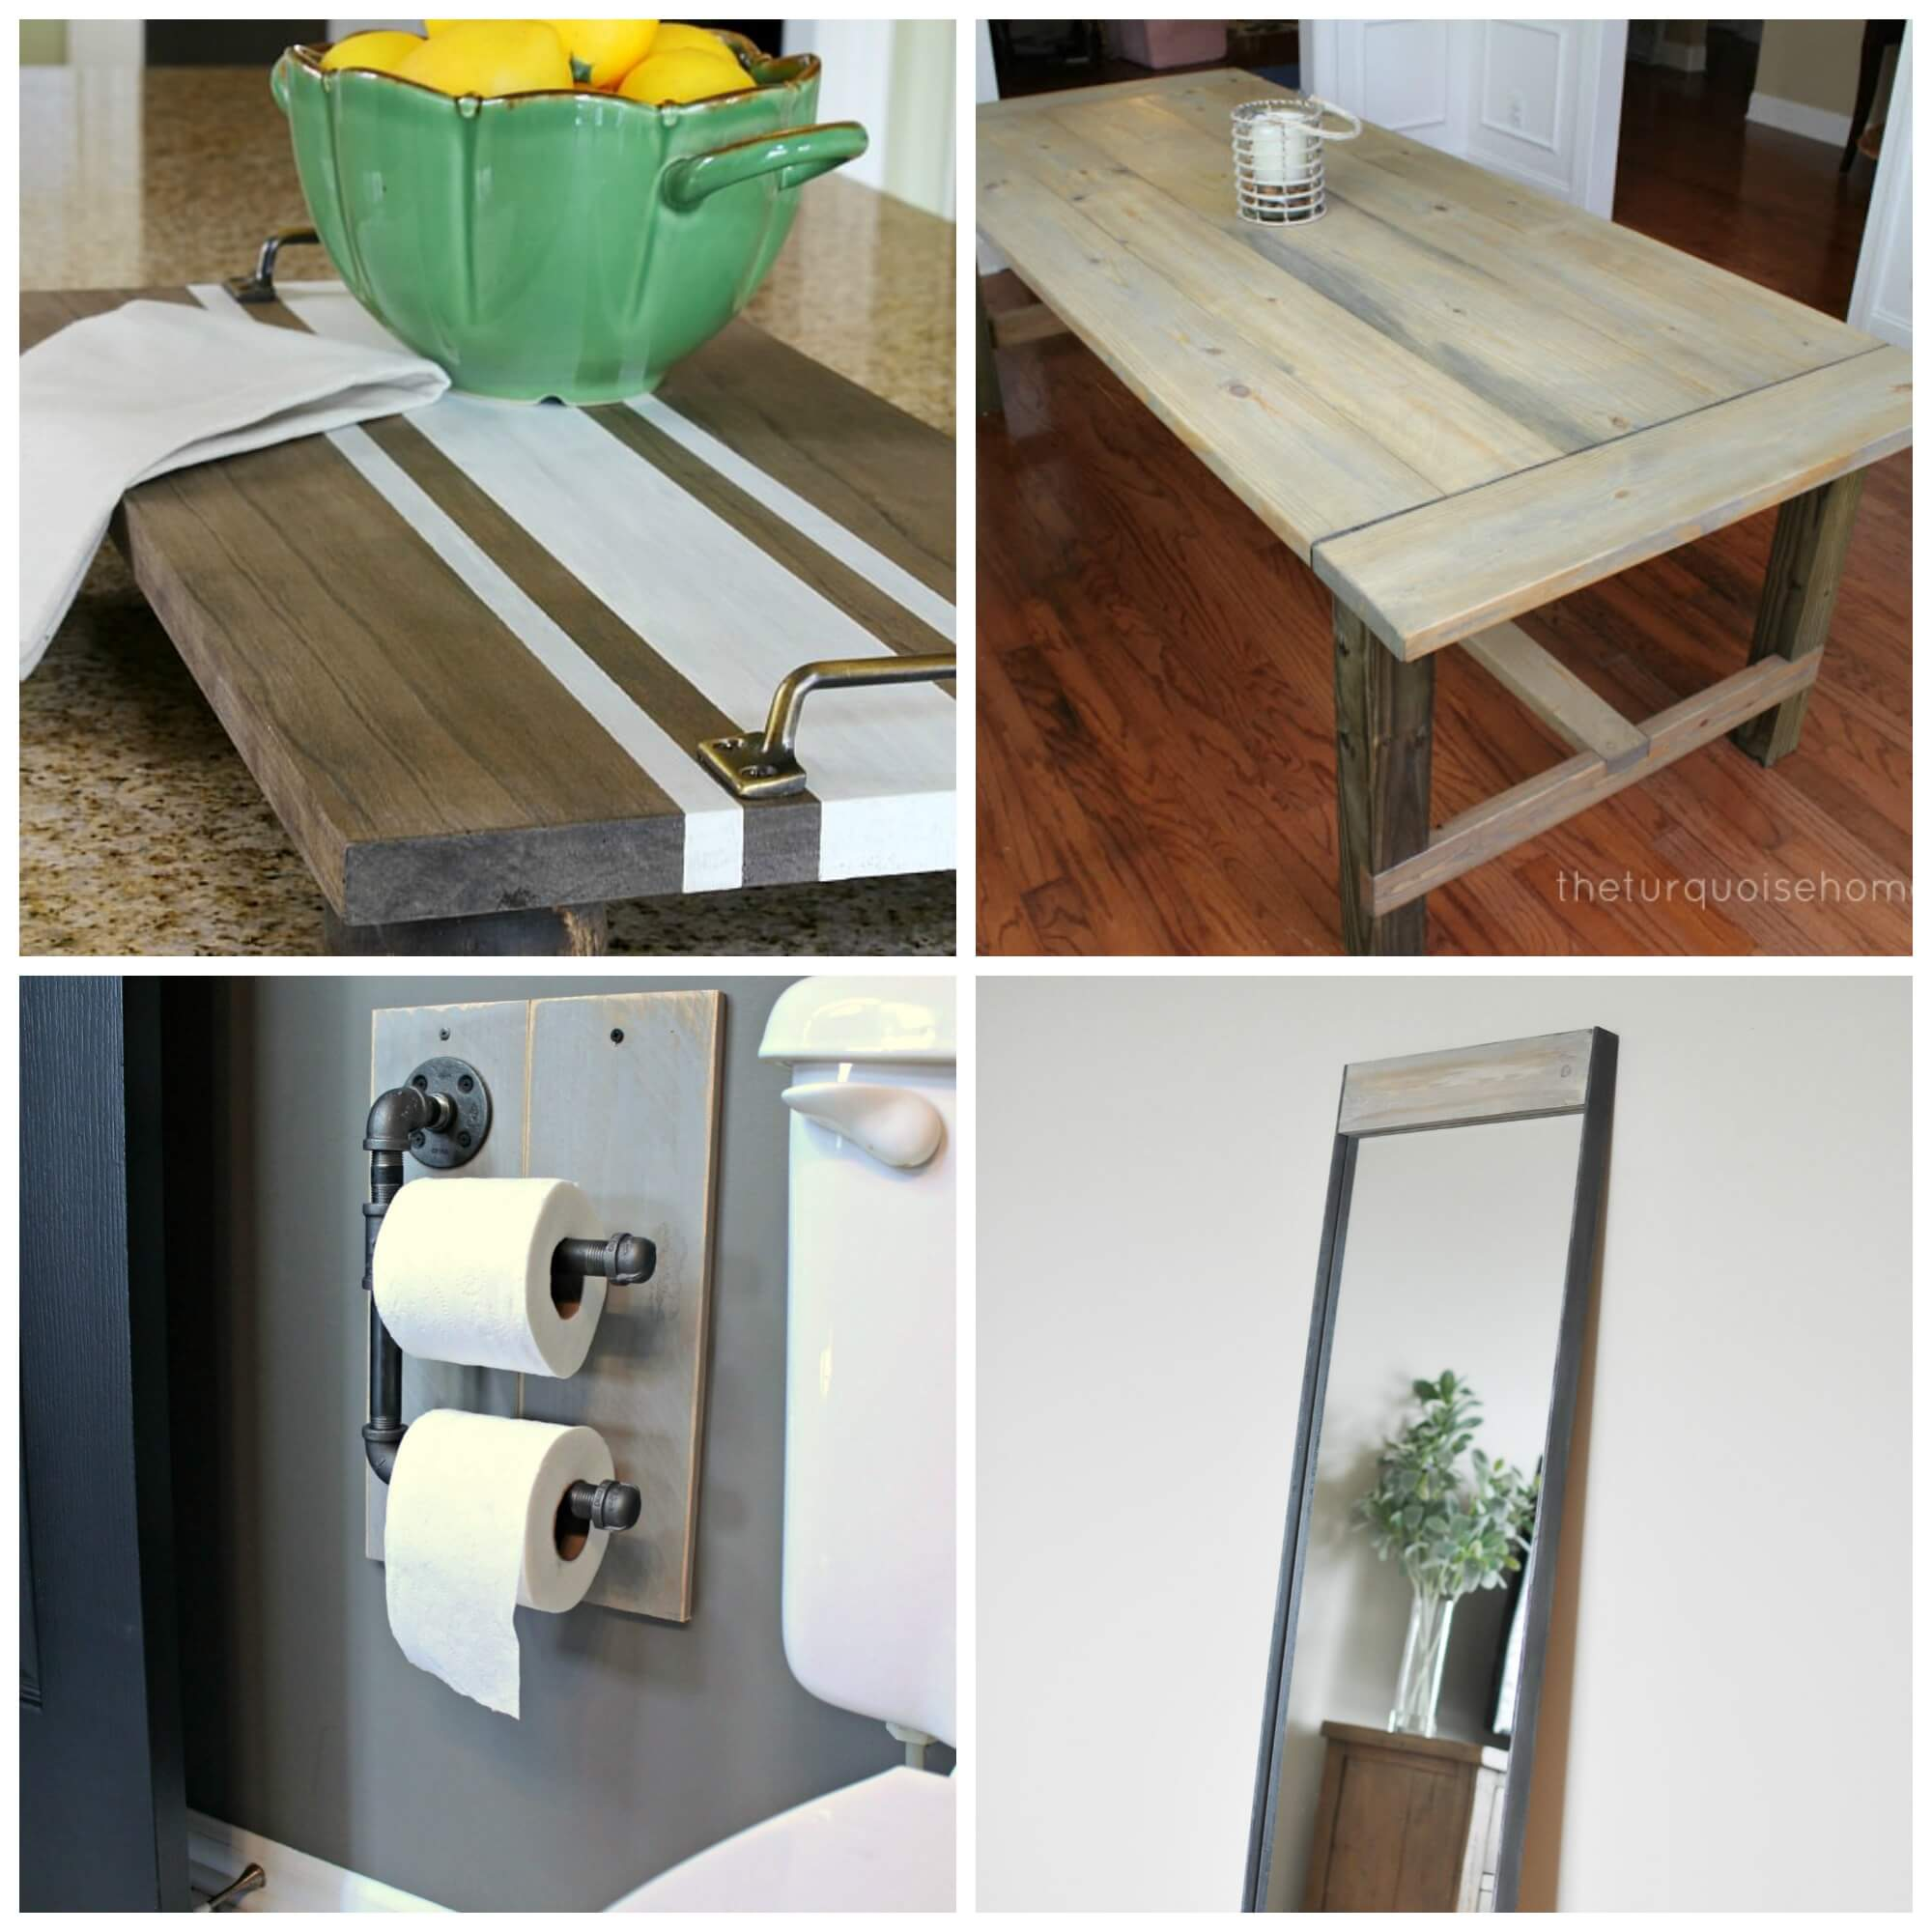 12 easy diy projects for the home merry monday twelve on main i love finding new diy projects for the home become a do it yourself pro solutioingenieria